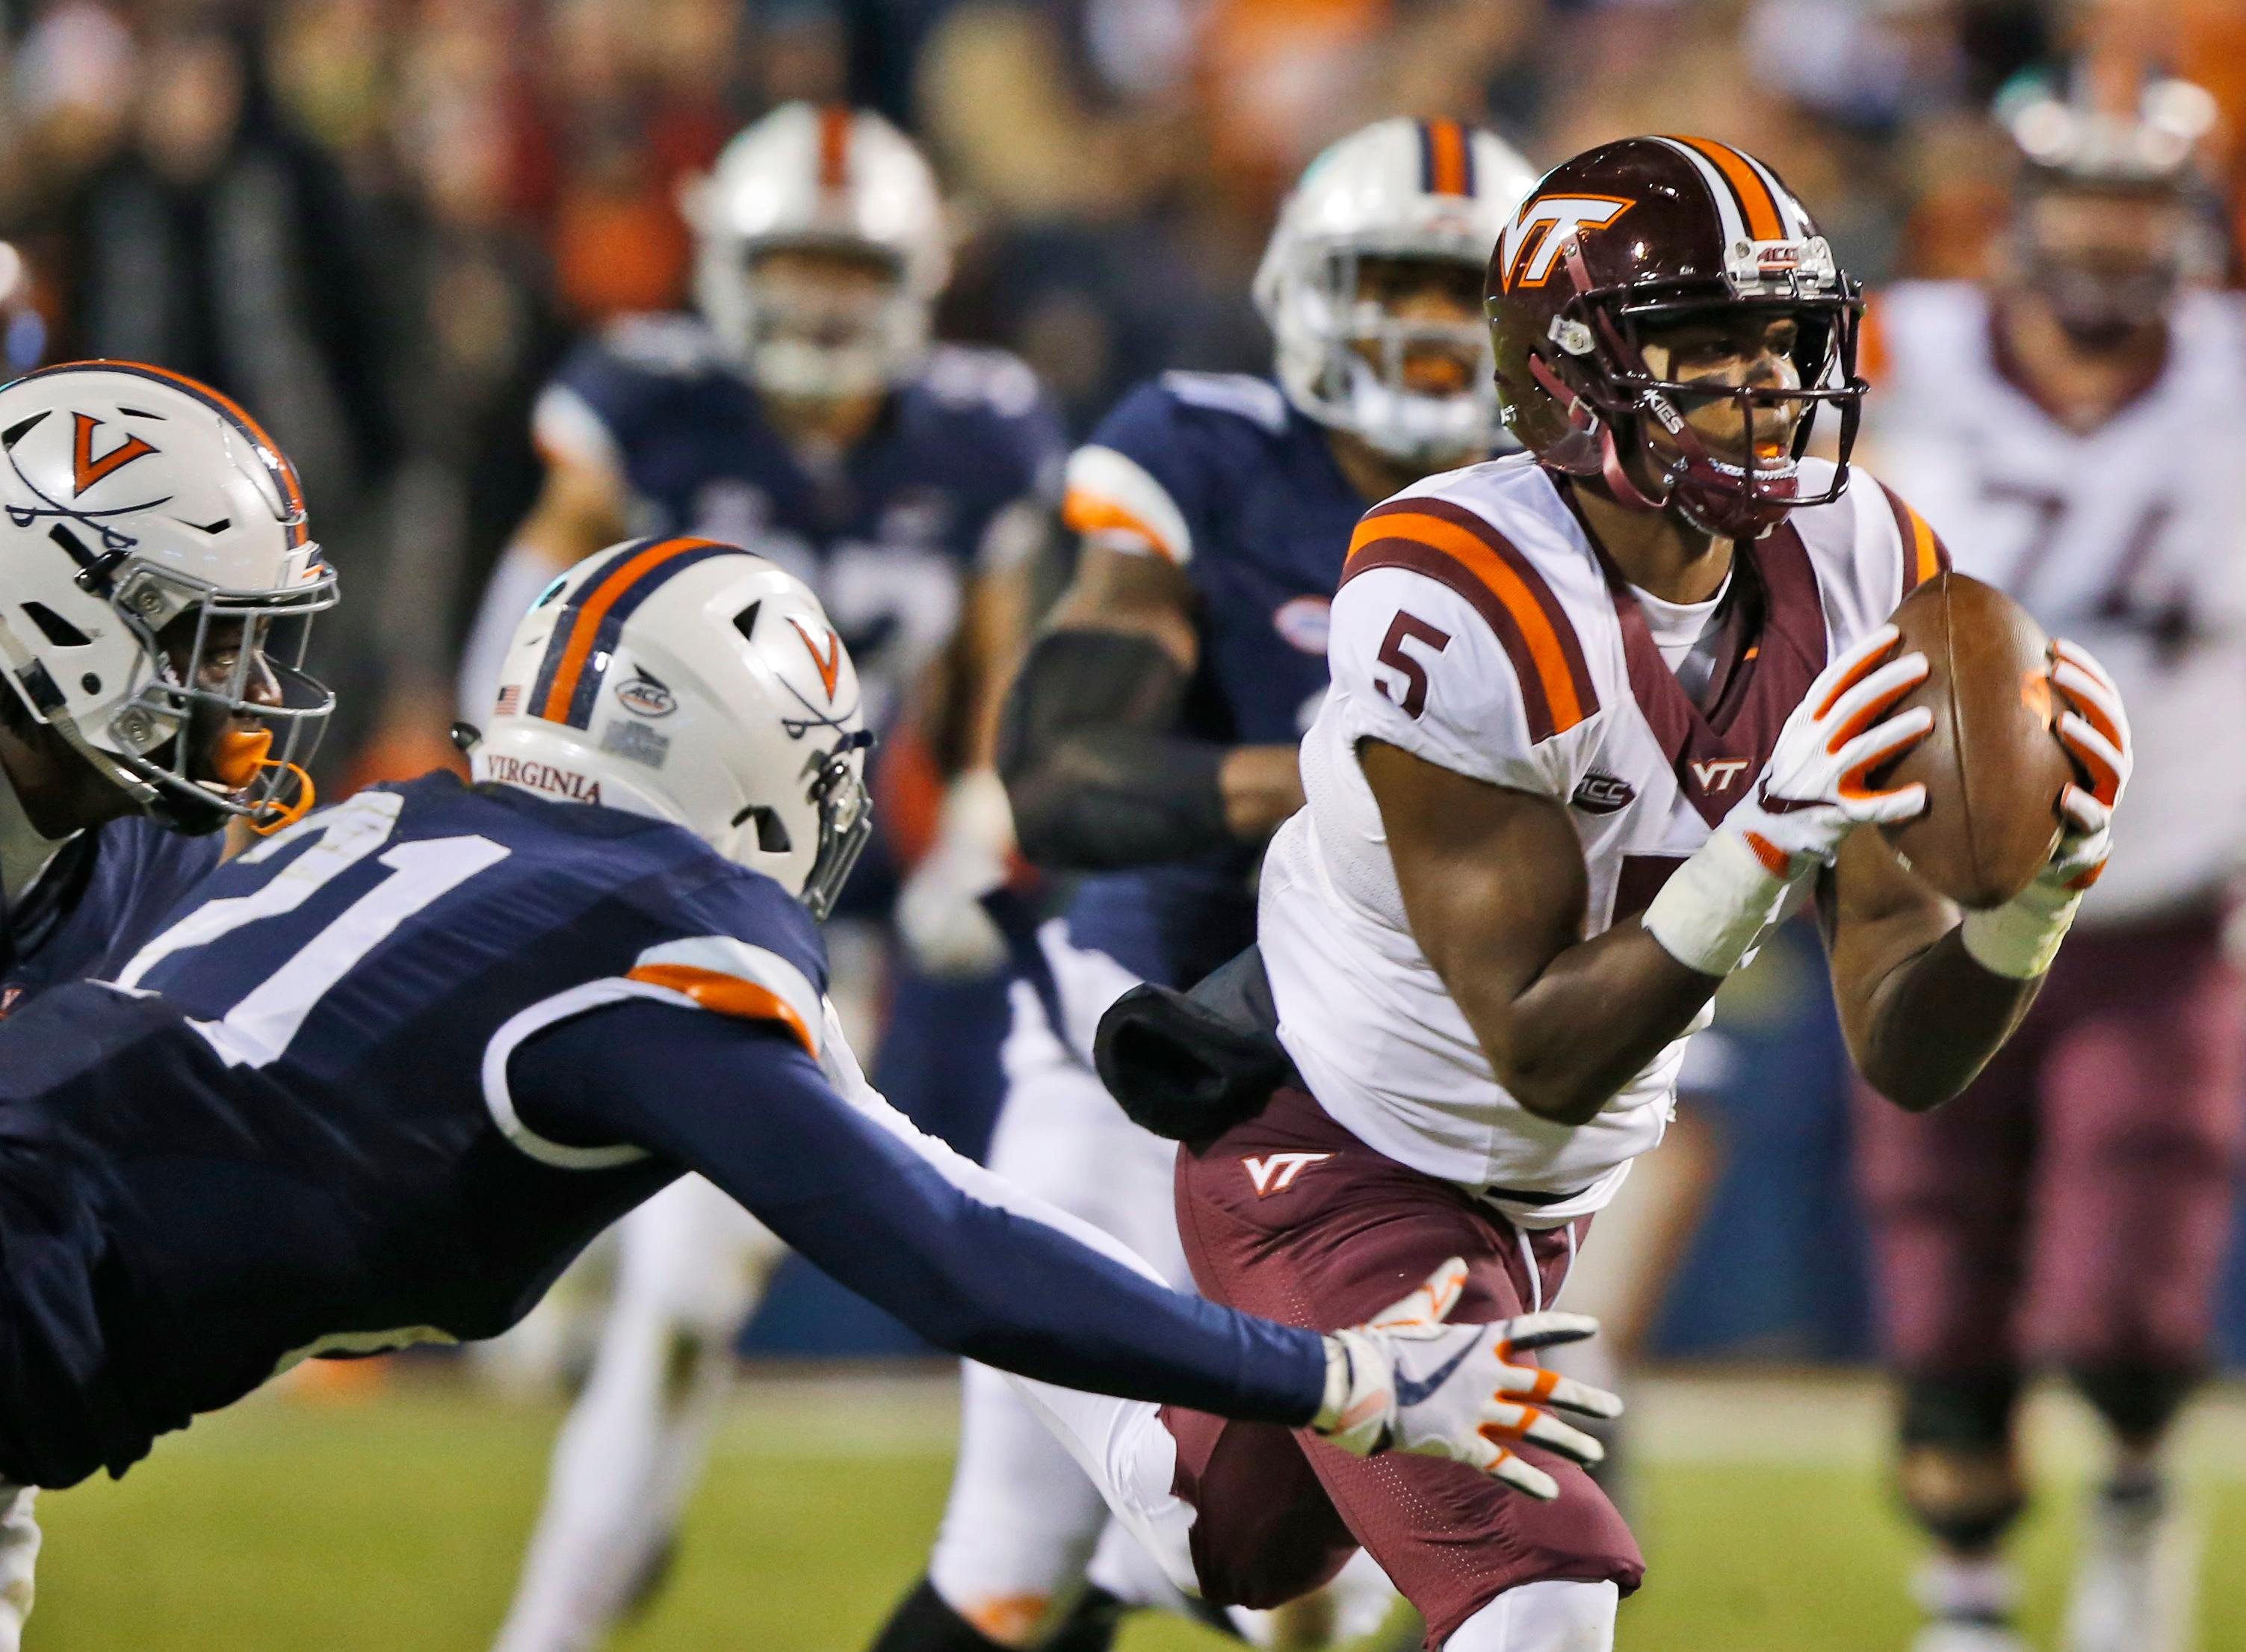 Virginia Tech wide receiver Cam Phillips (5) hauls in a pass in front of Virginia safety Juan Thornhill (21) during the first half of an NCAA college football game in Charlottesville, Va., Friday, Nov. 24, 2017. (AP Photo/Steve Helber)